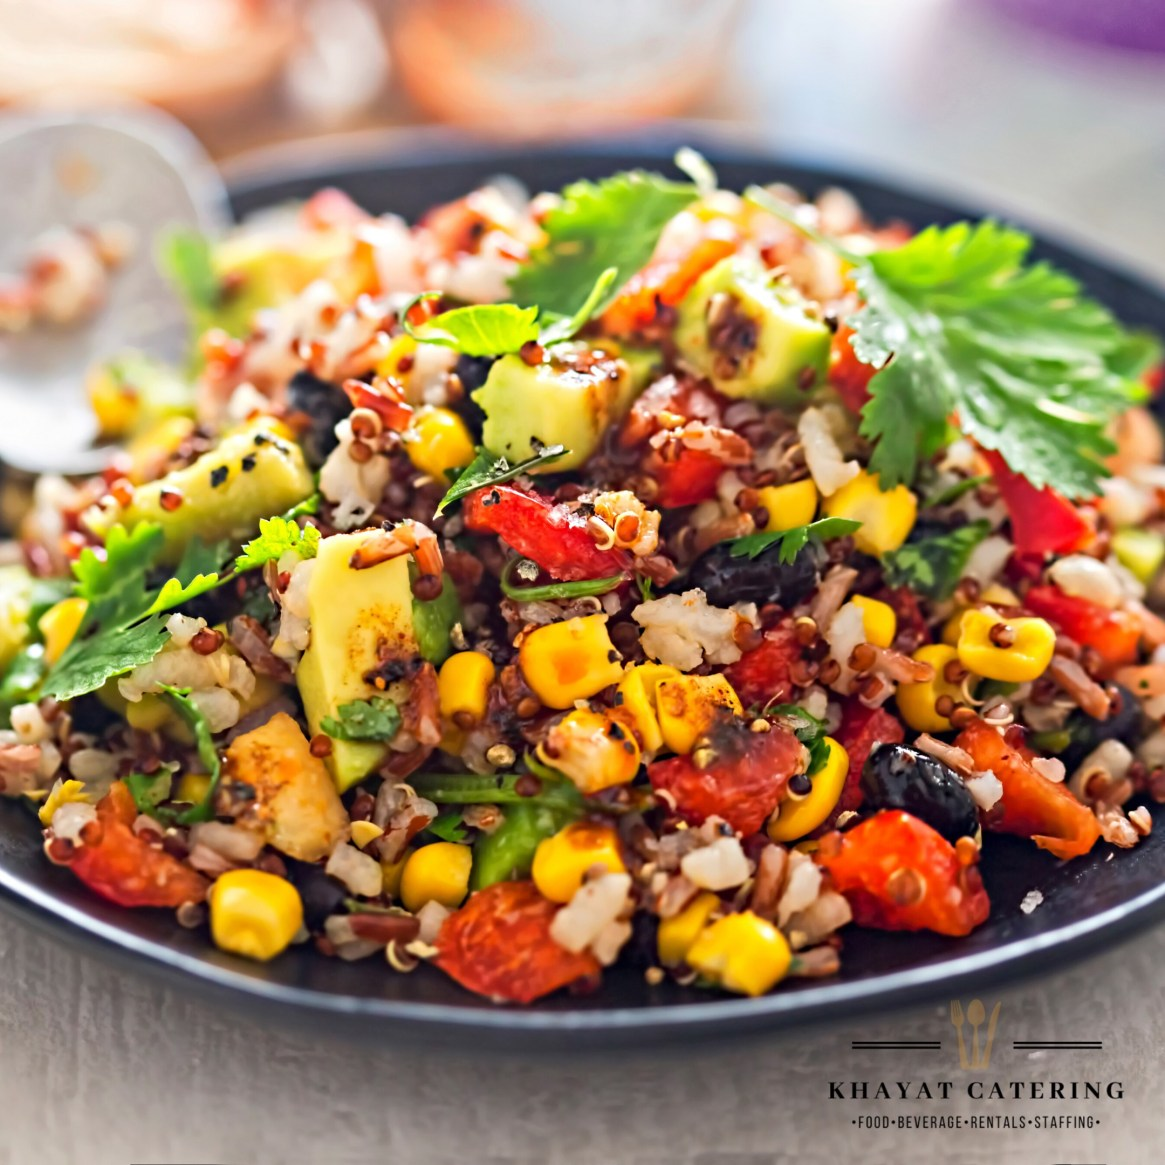 Khayat Catering roasted corn and black bean salad